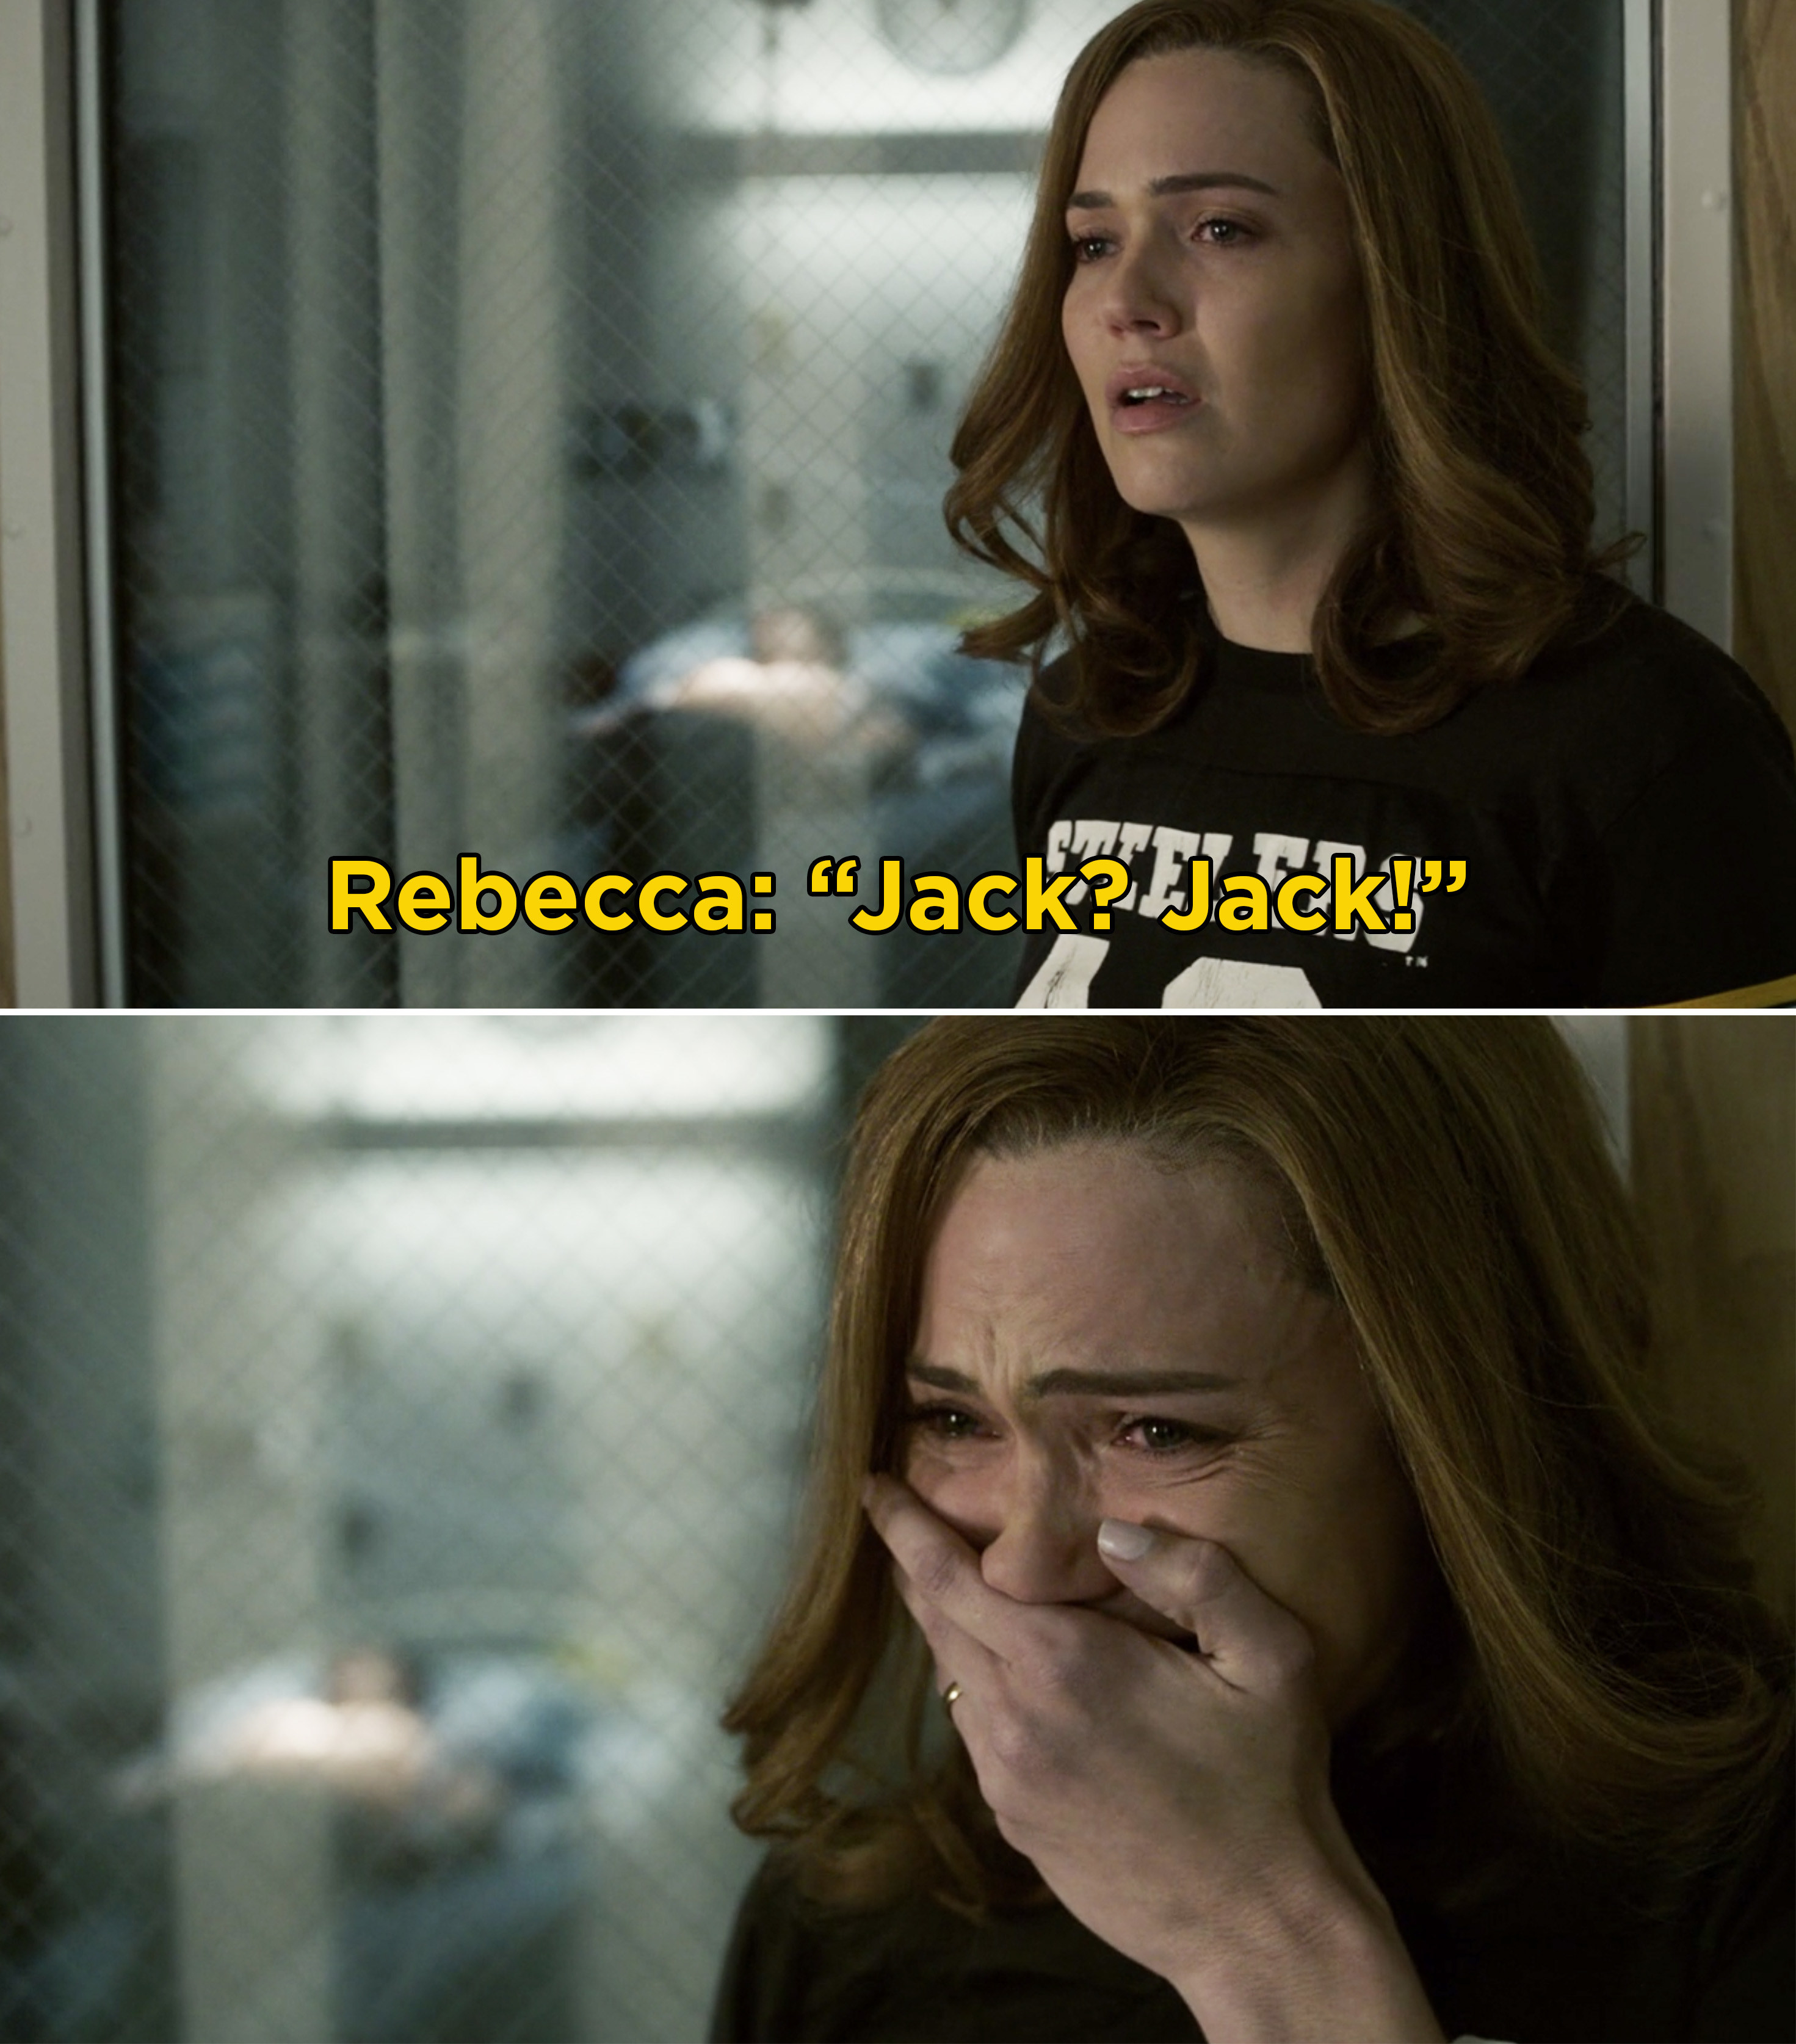 Rebecca calling after Jack, then crying after seeing his body